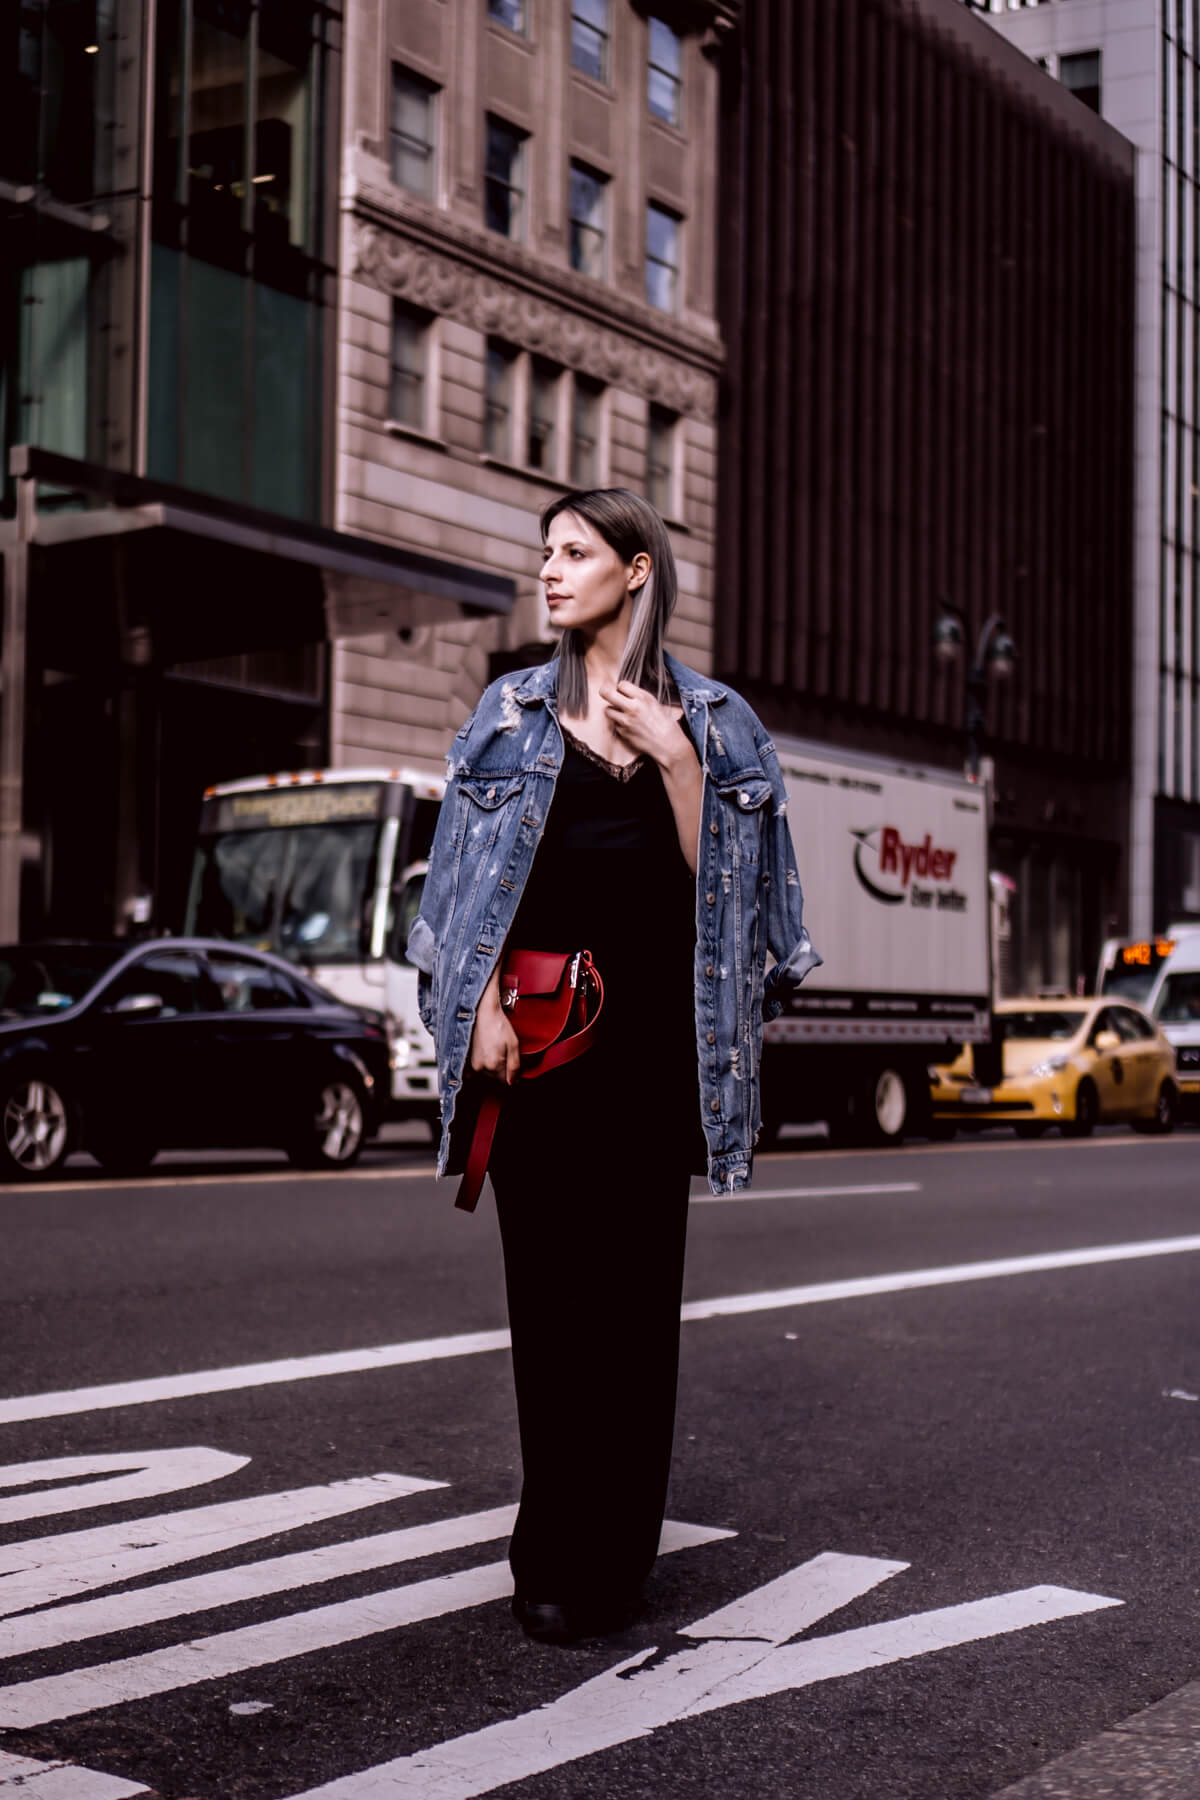 NEW YORK CITY Style Wearing Wide-Leg Pants